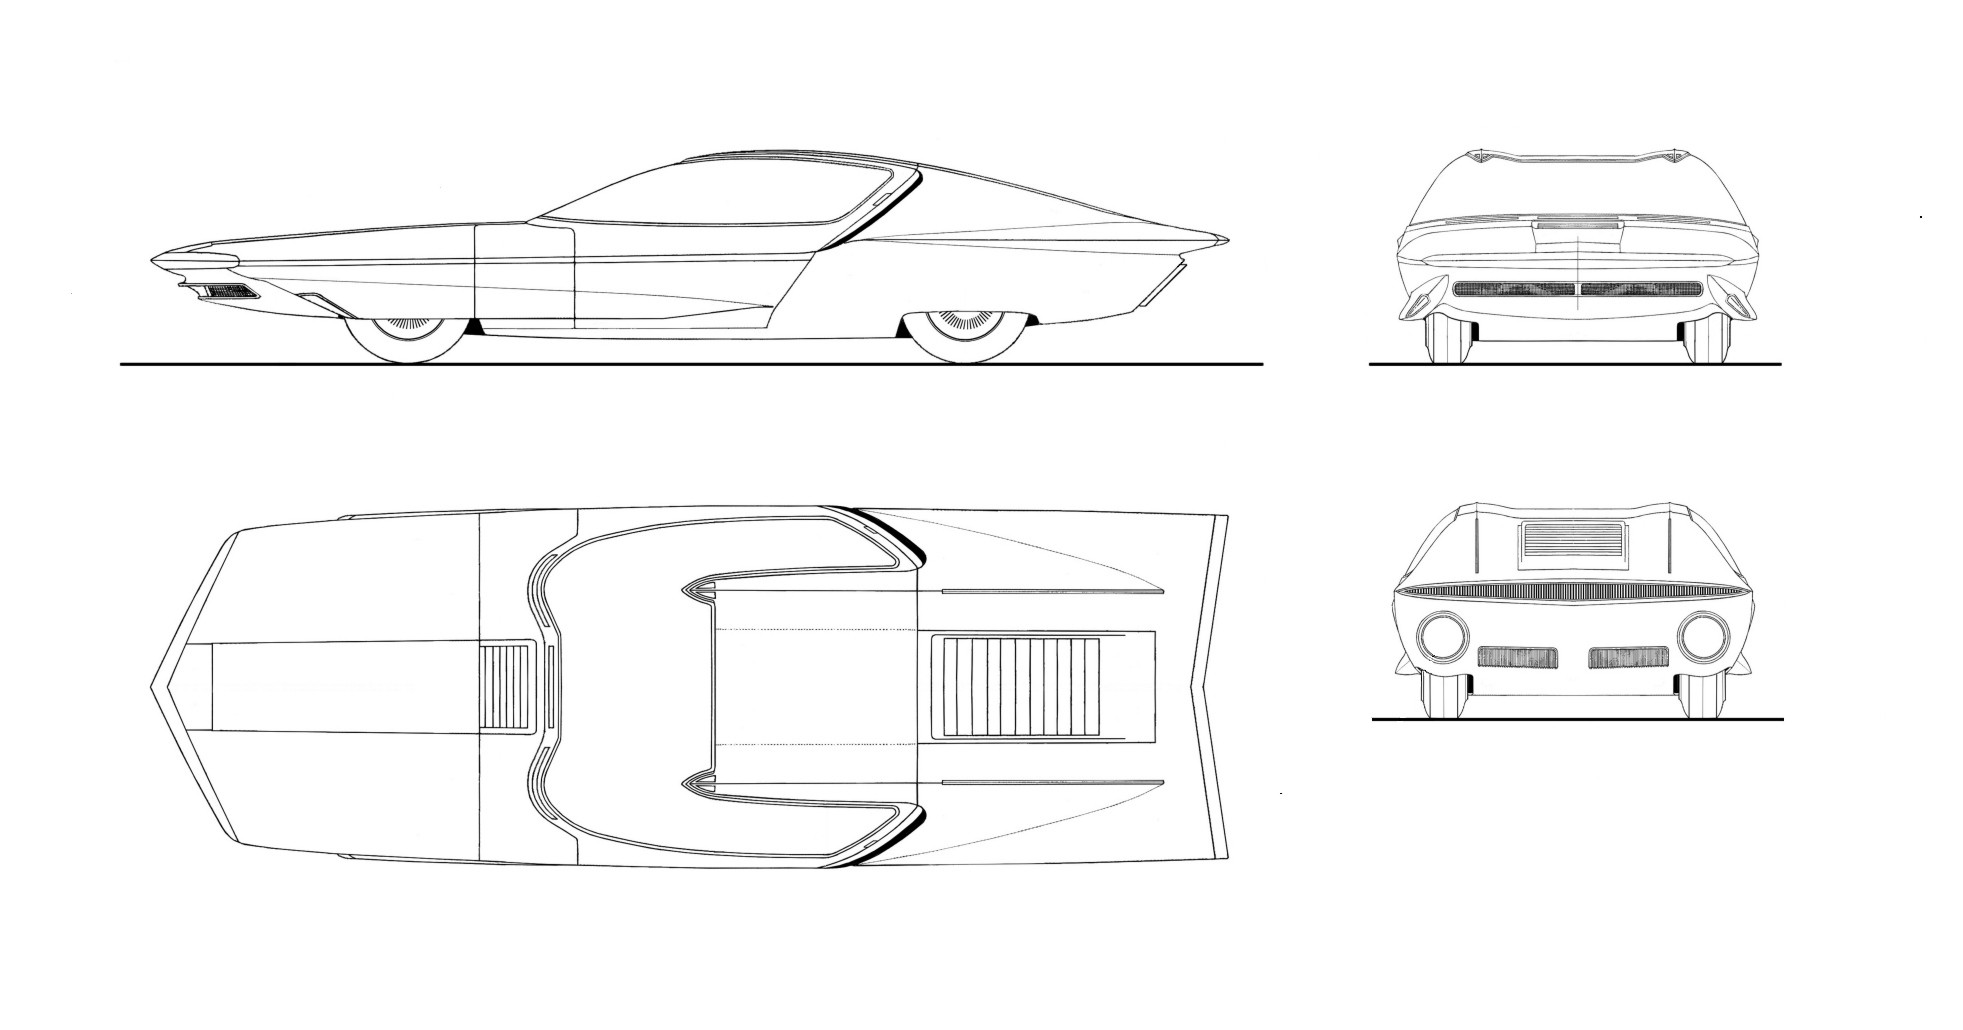 General Motors Firebird blueprint